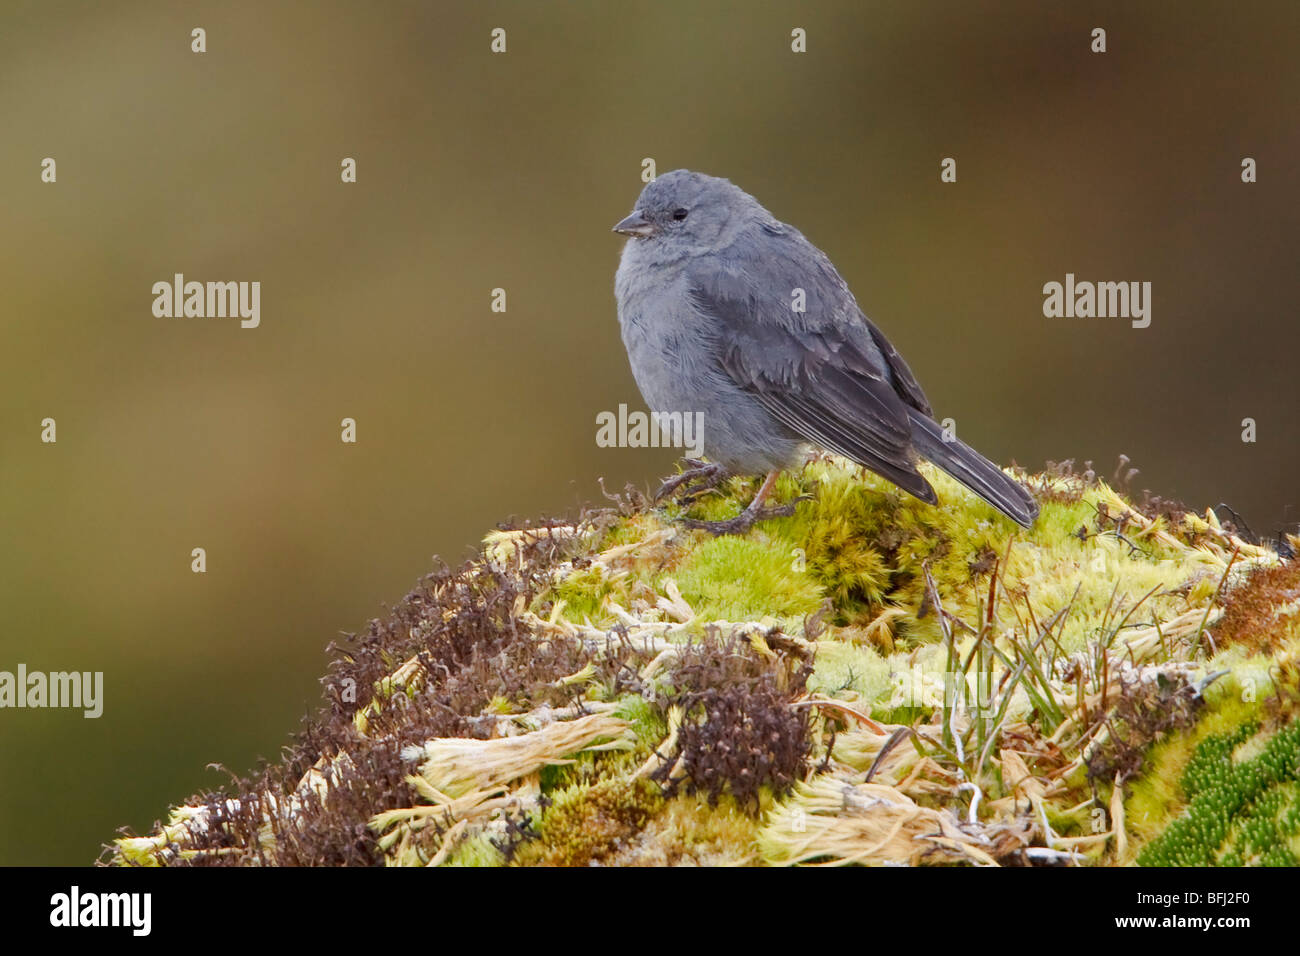 perched on paramo vegetation in the highlands of Ecuador. - Stock Image